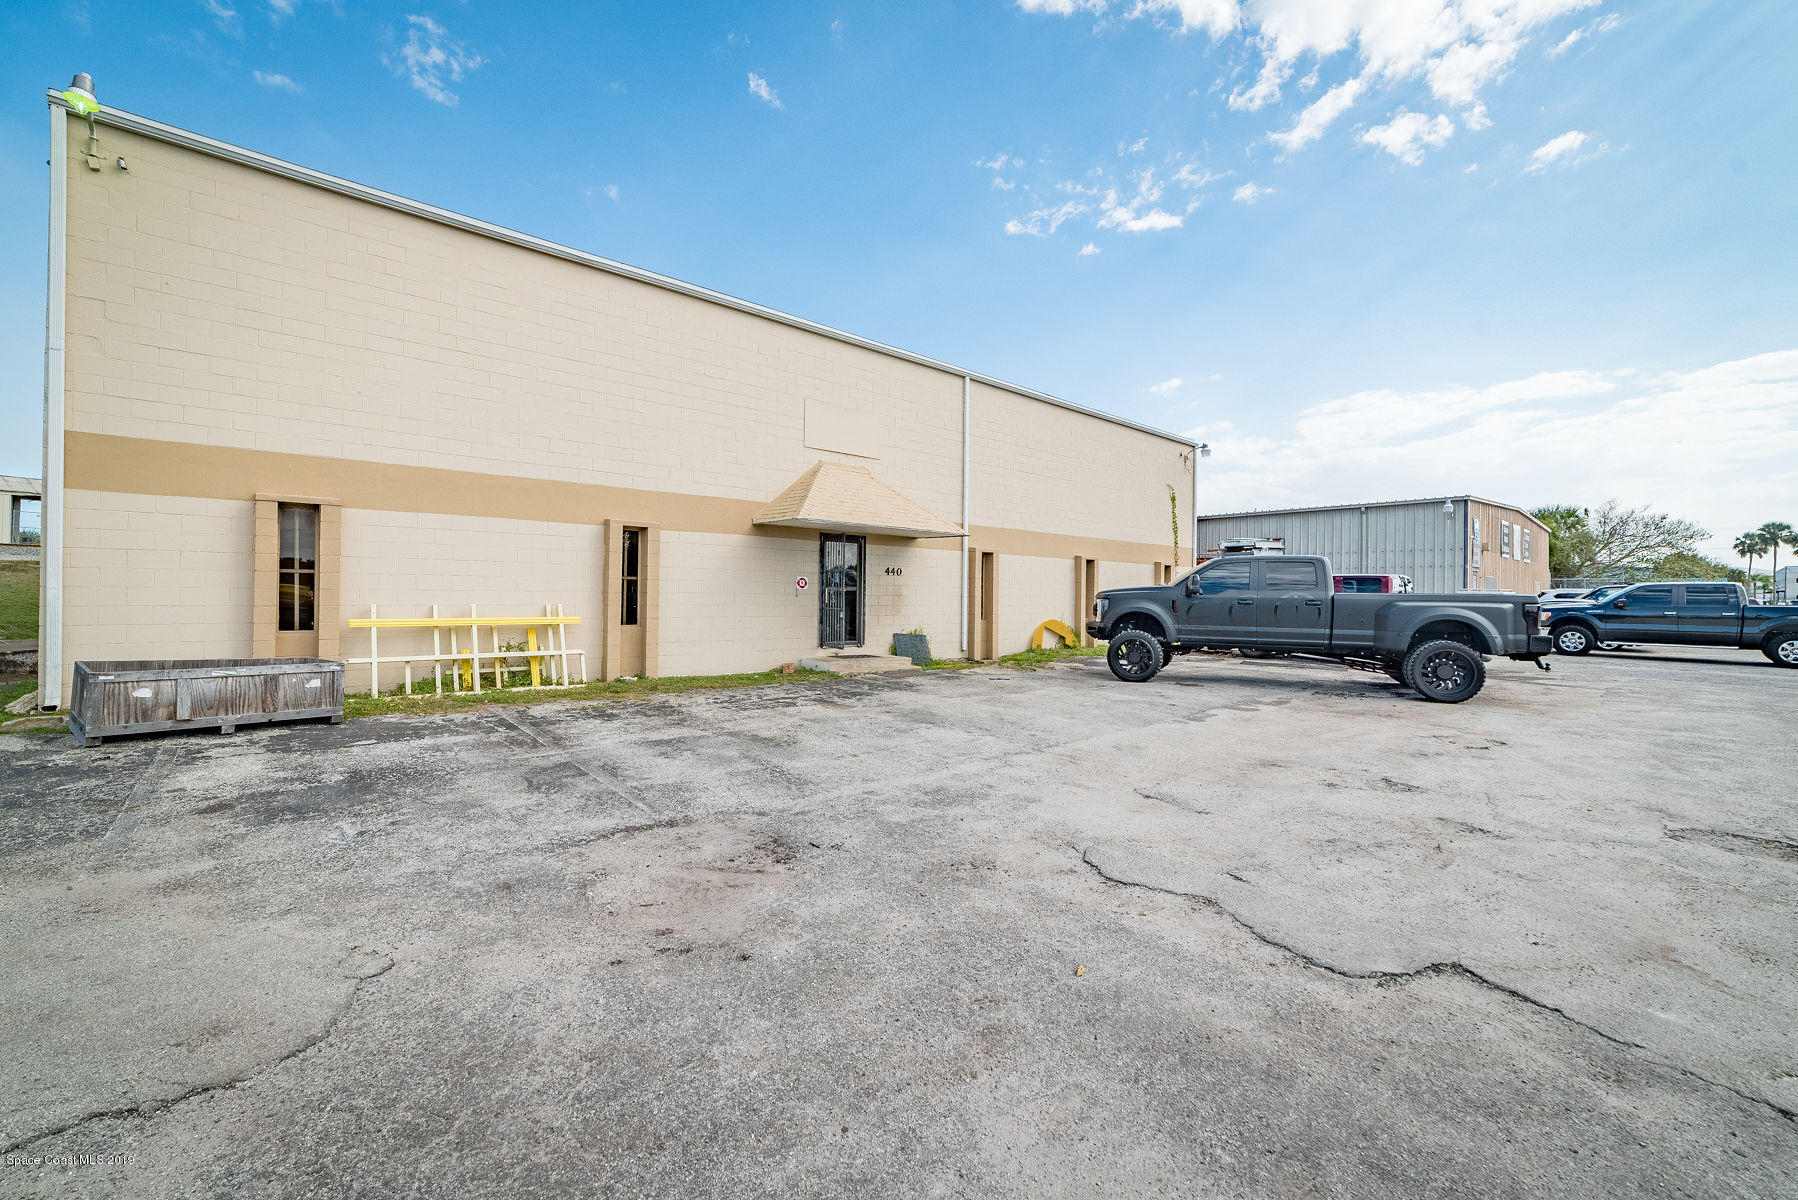 Commercial for Sale at 440 Shearer Boulevard Cocoa, Florida 32922 United States